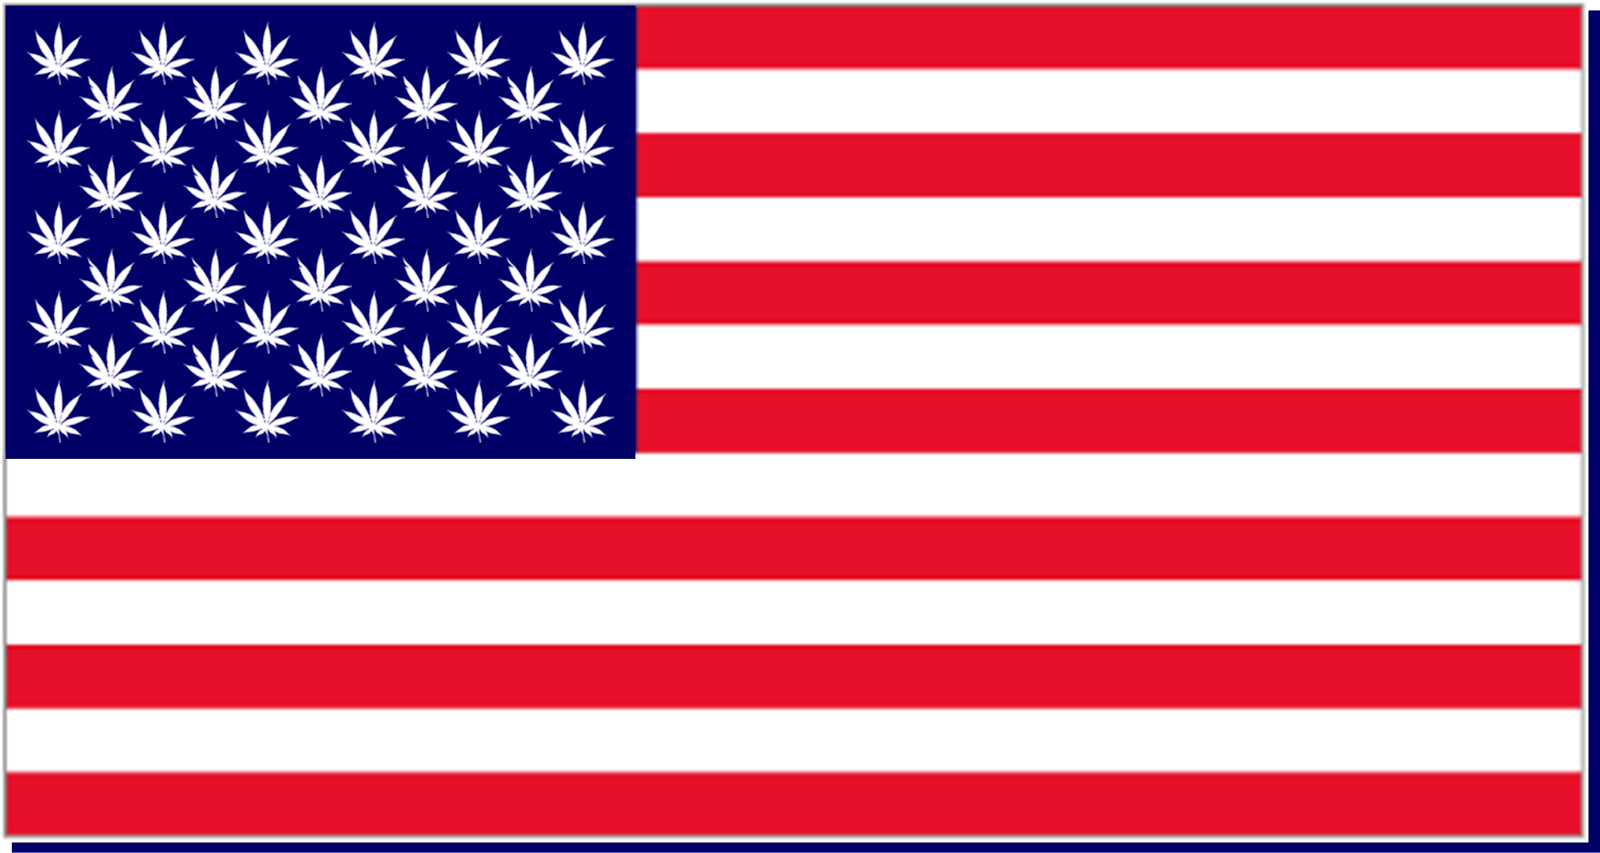 USA returns to its roots - marijuana roots - in 1776 the founding fathers grew marijuana